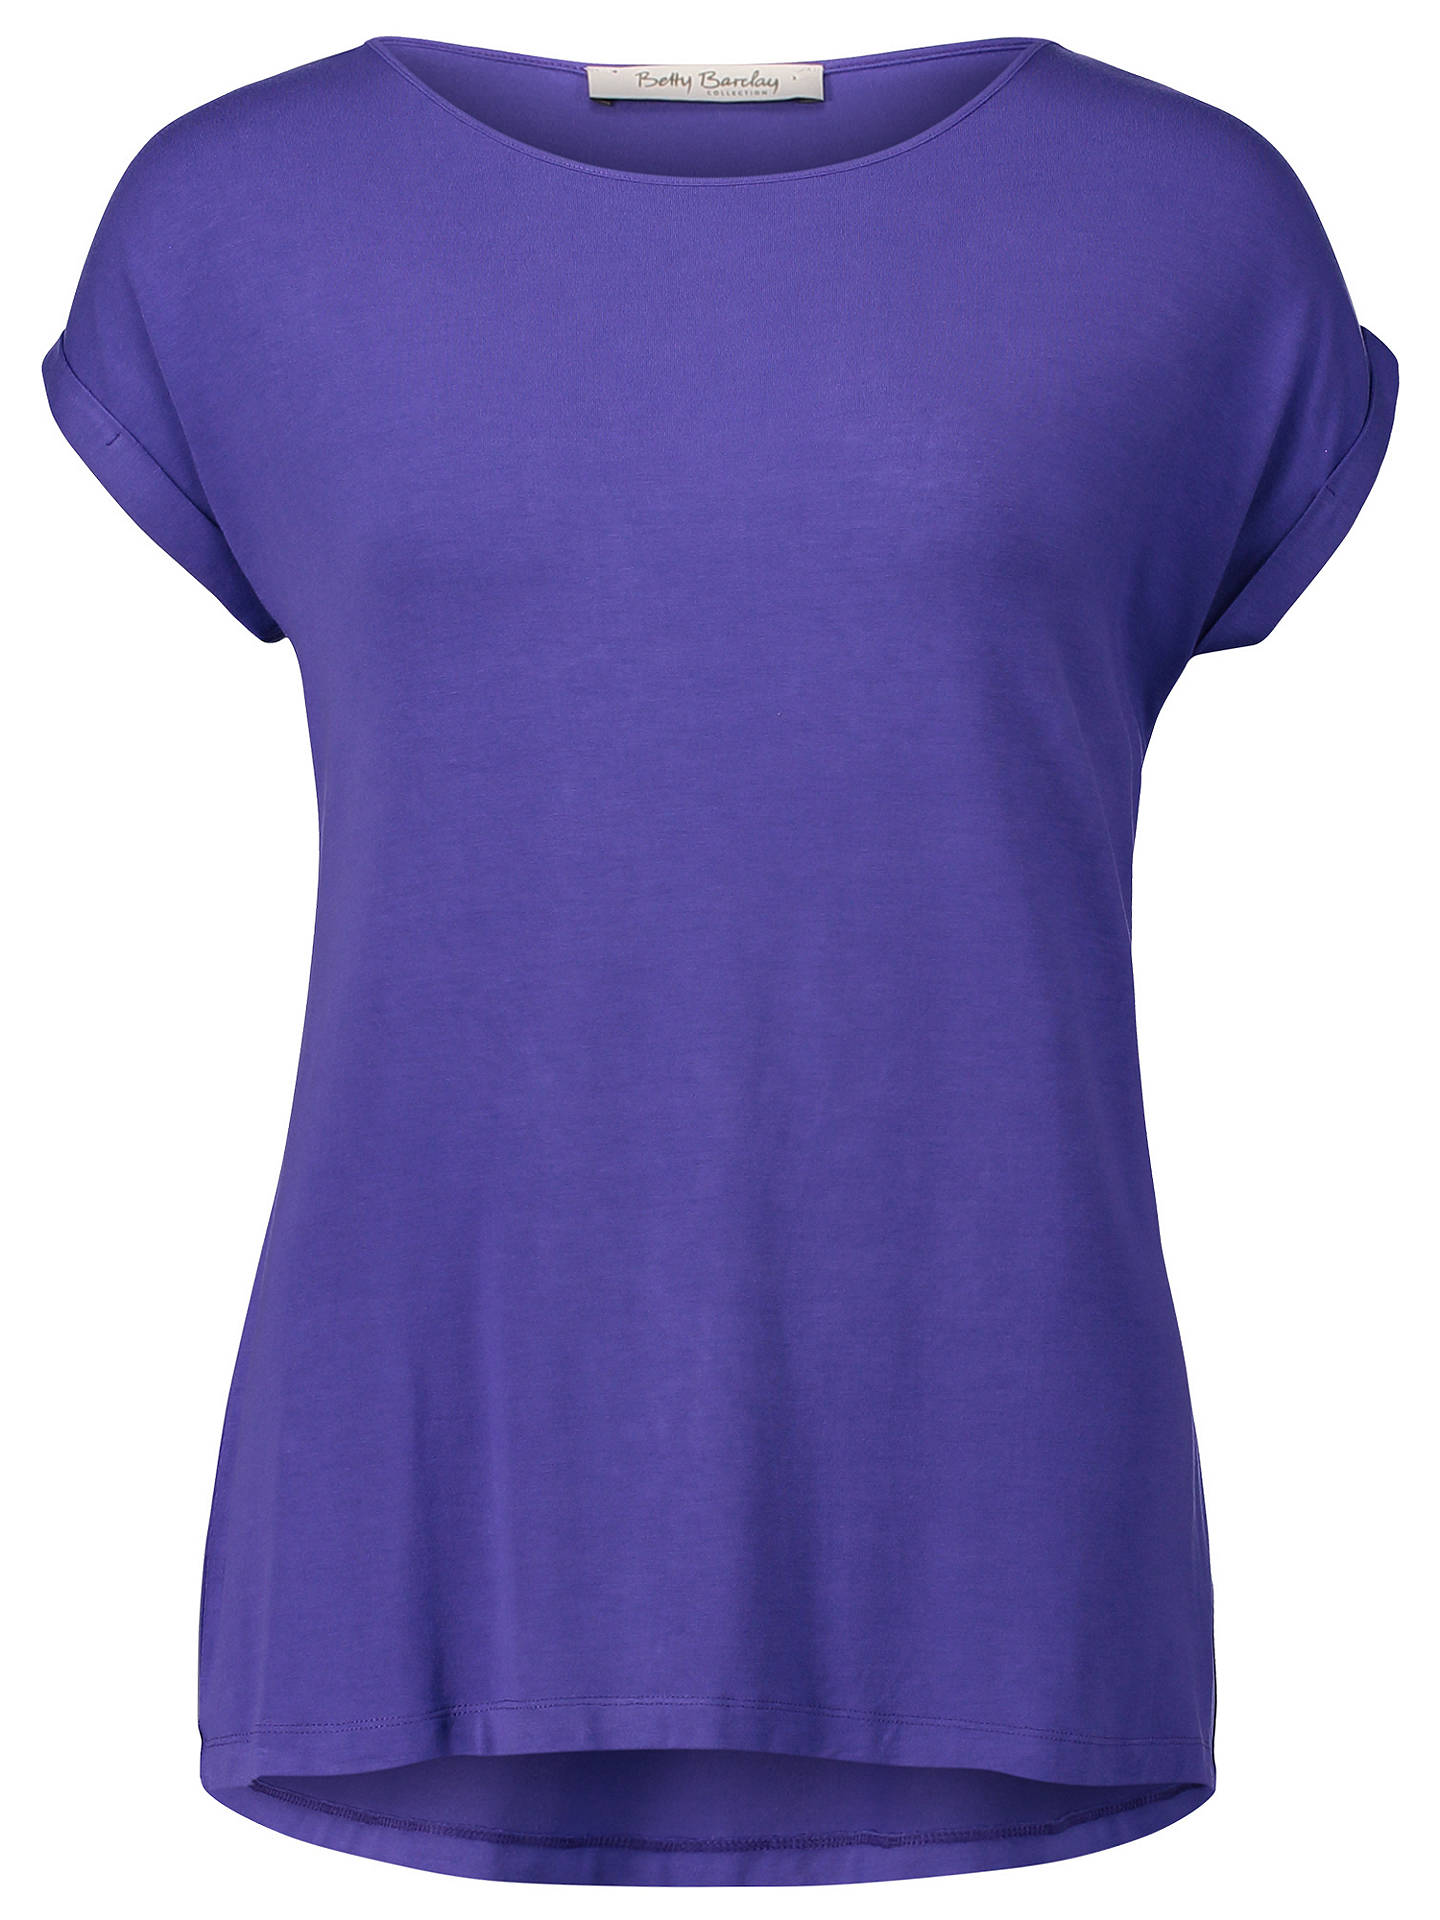 Buy Betty Barclay Cap Sleeve T-Shirt, Liberty, 10 Online at johnlewis.com